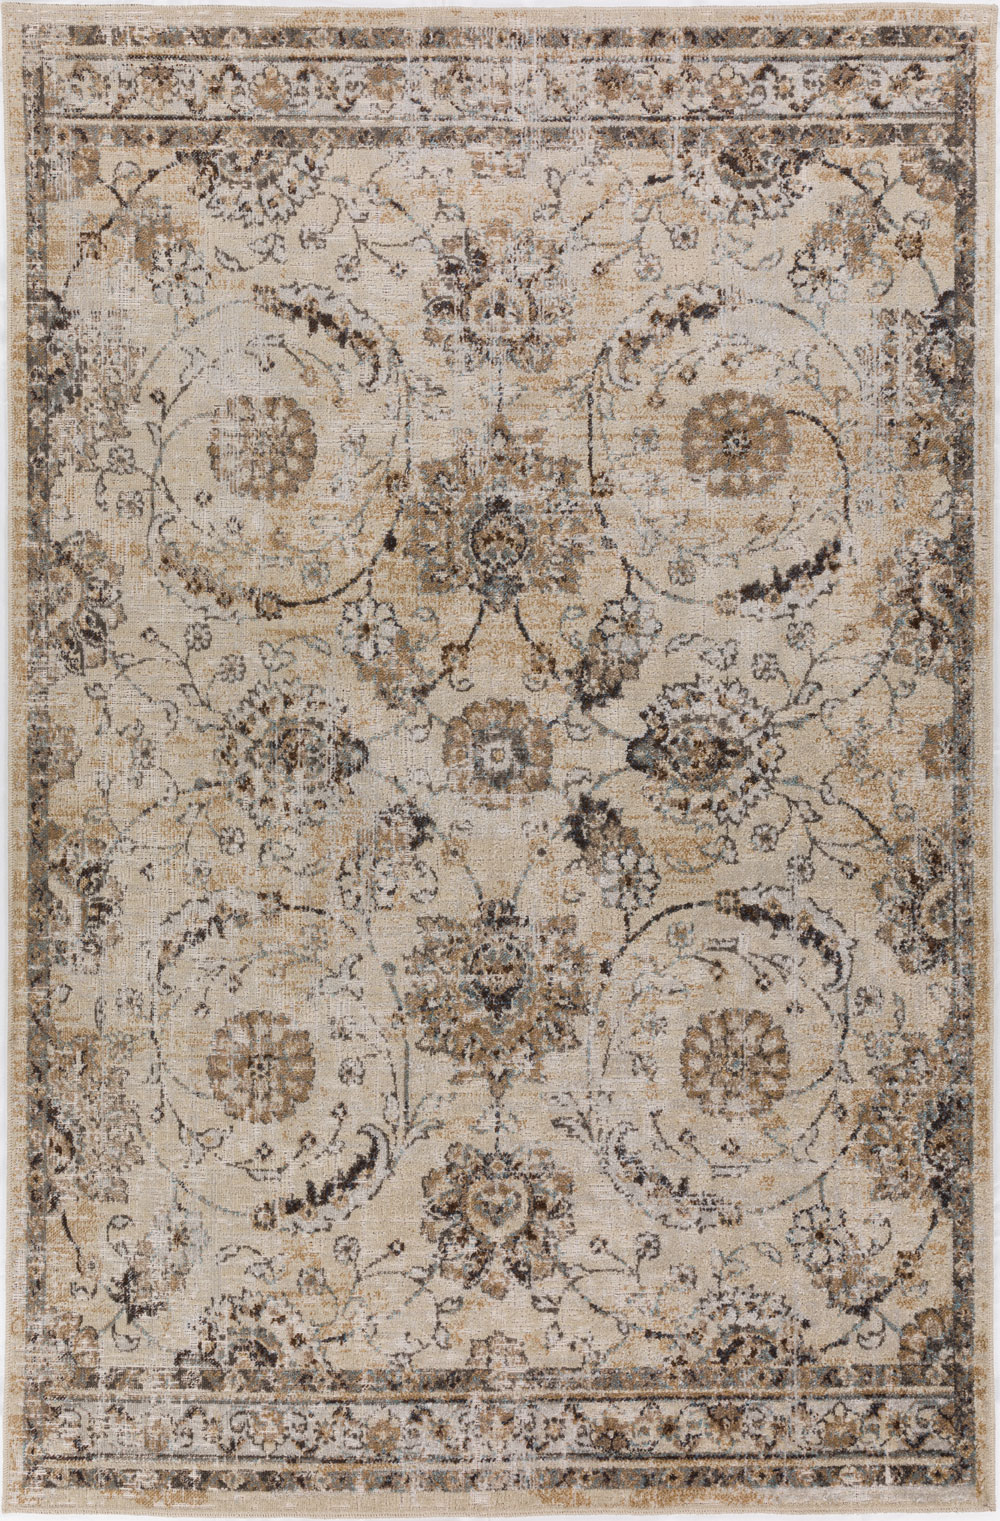 Dalyn Mercier MR2 Linen Rug